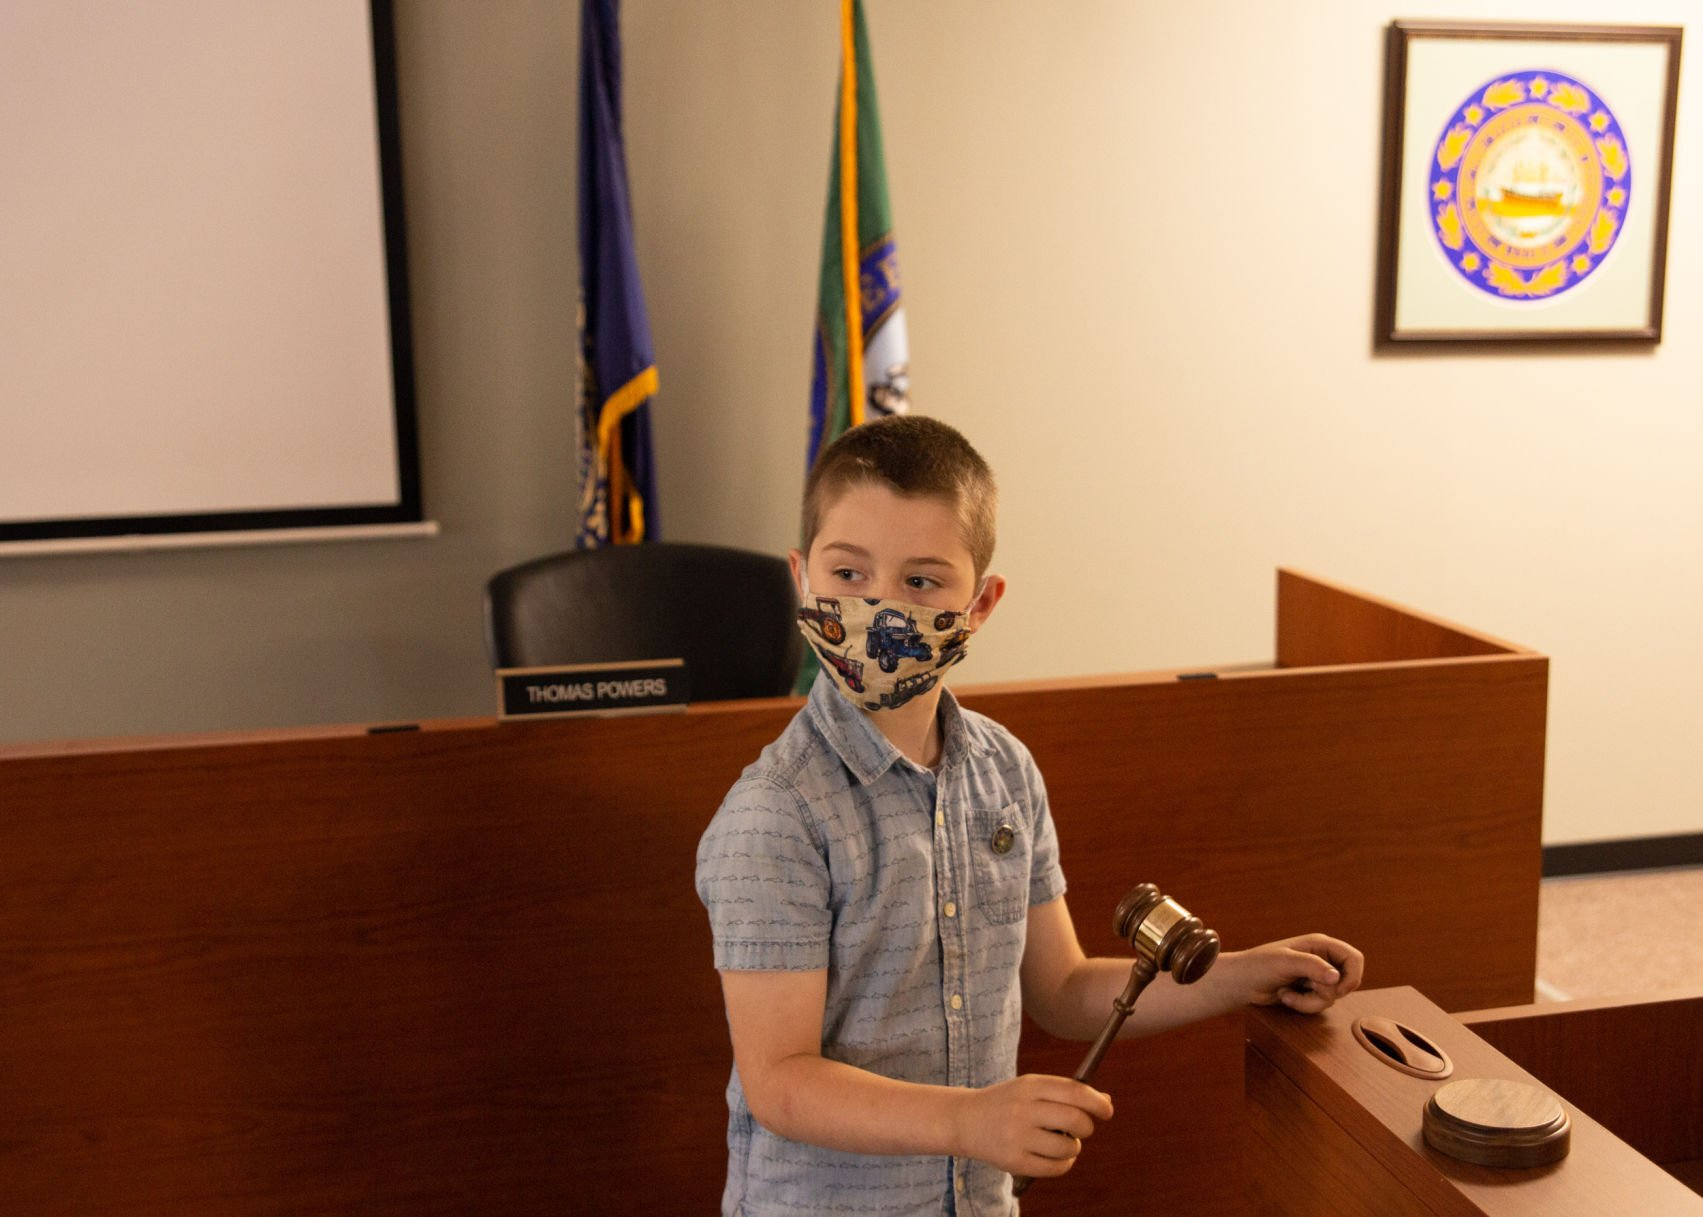 7-year-old takes gavel for the day as Keene's first 'kid mayor'